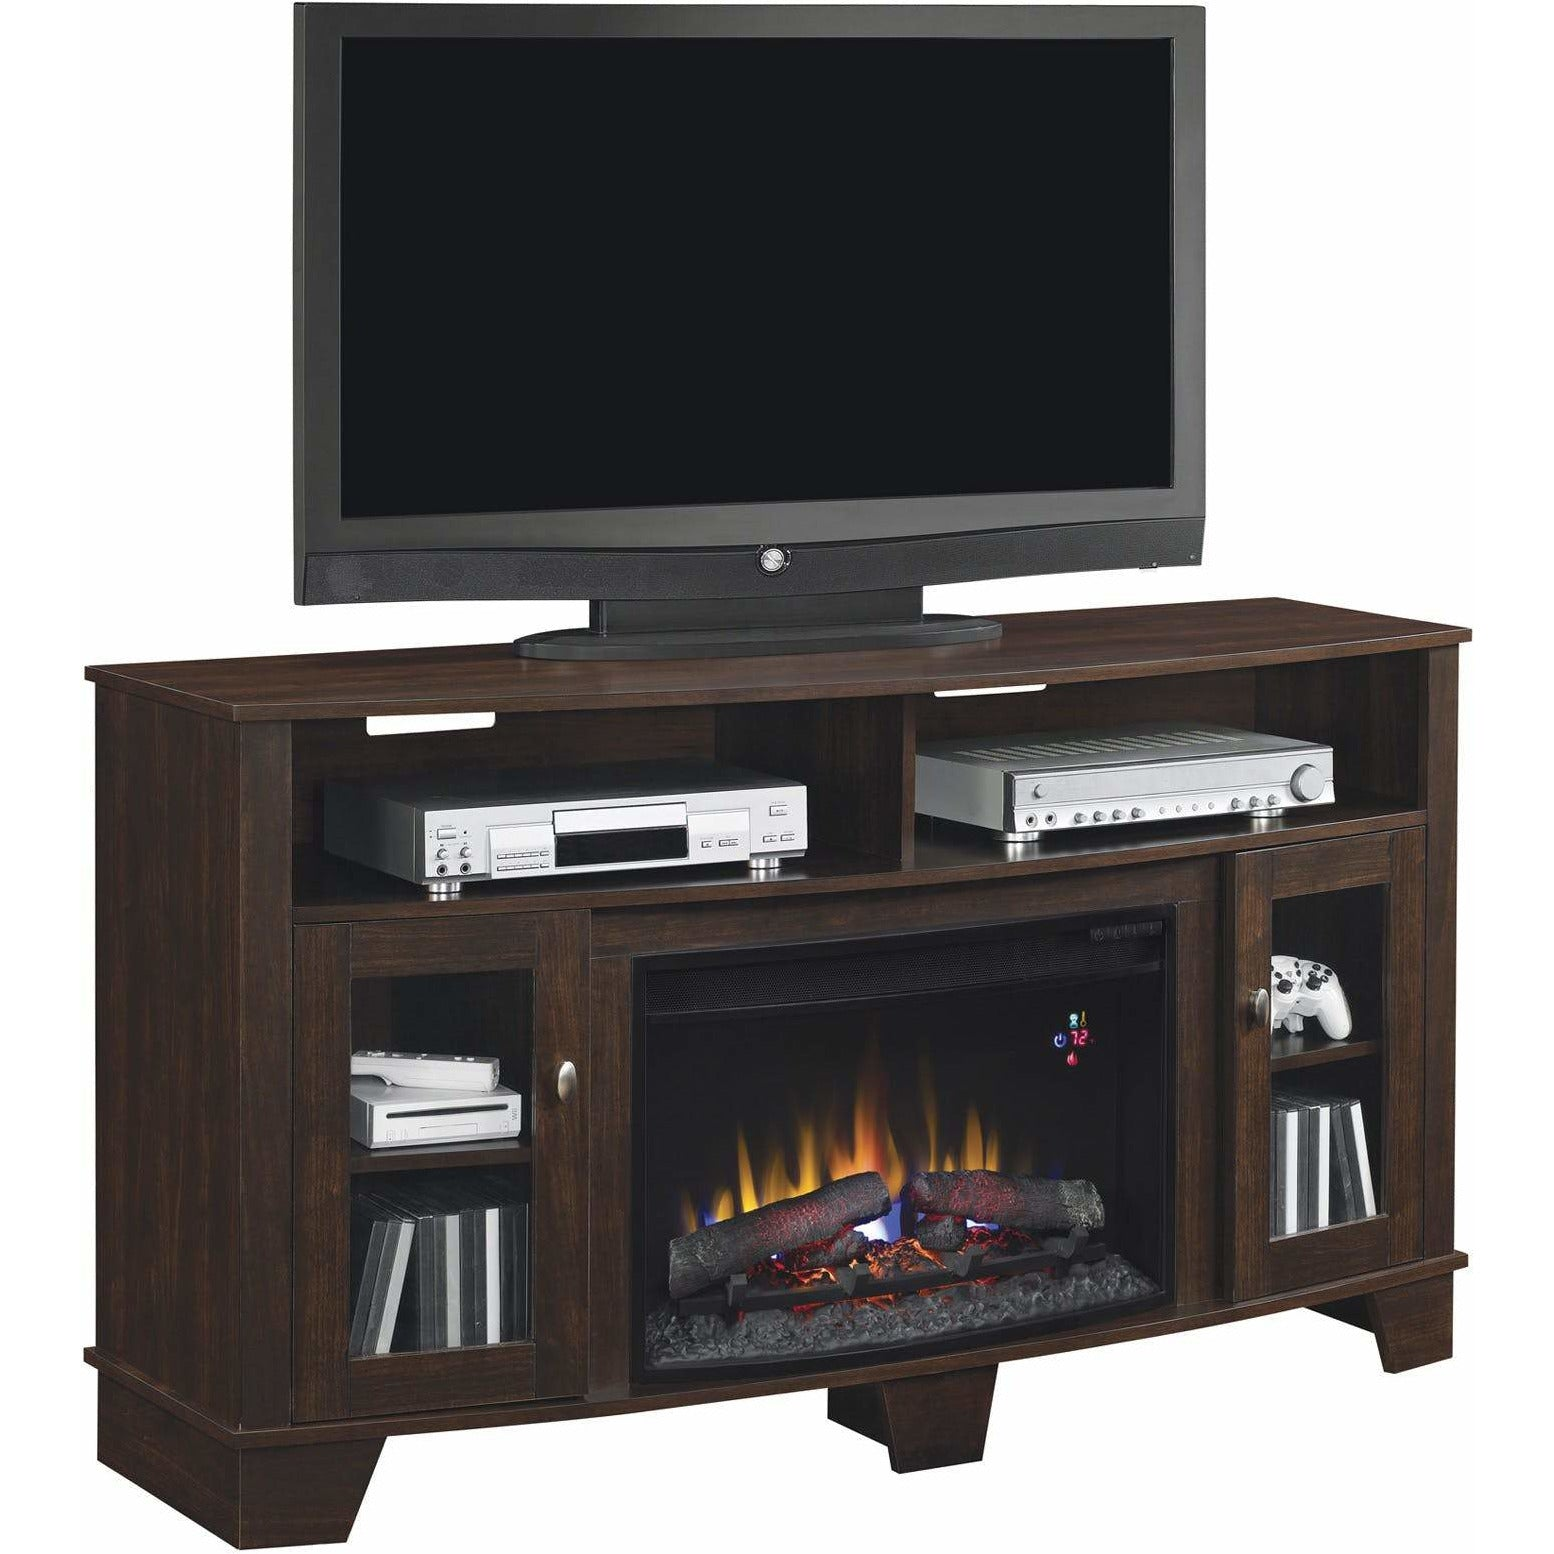 La Salle TV Stand with Fireplace Insert